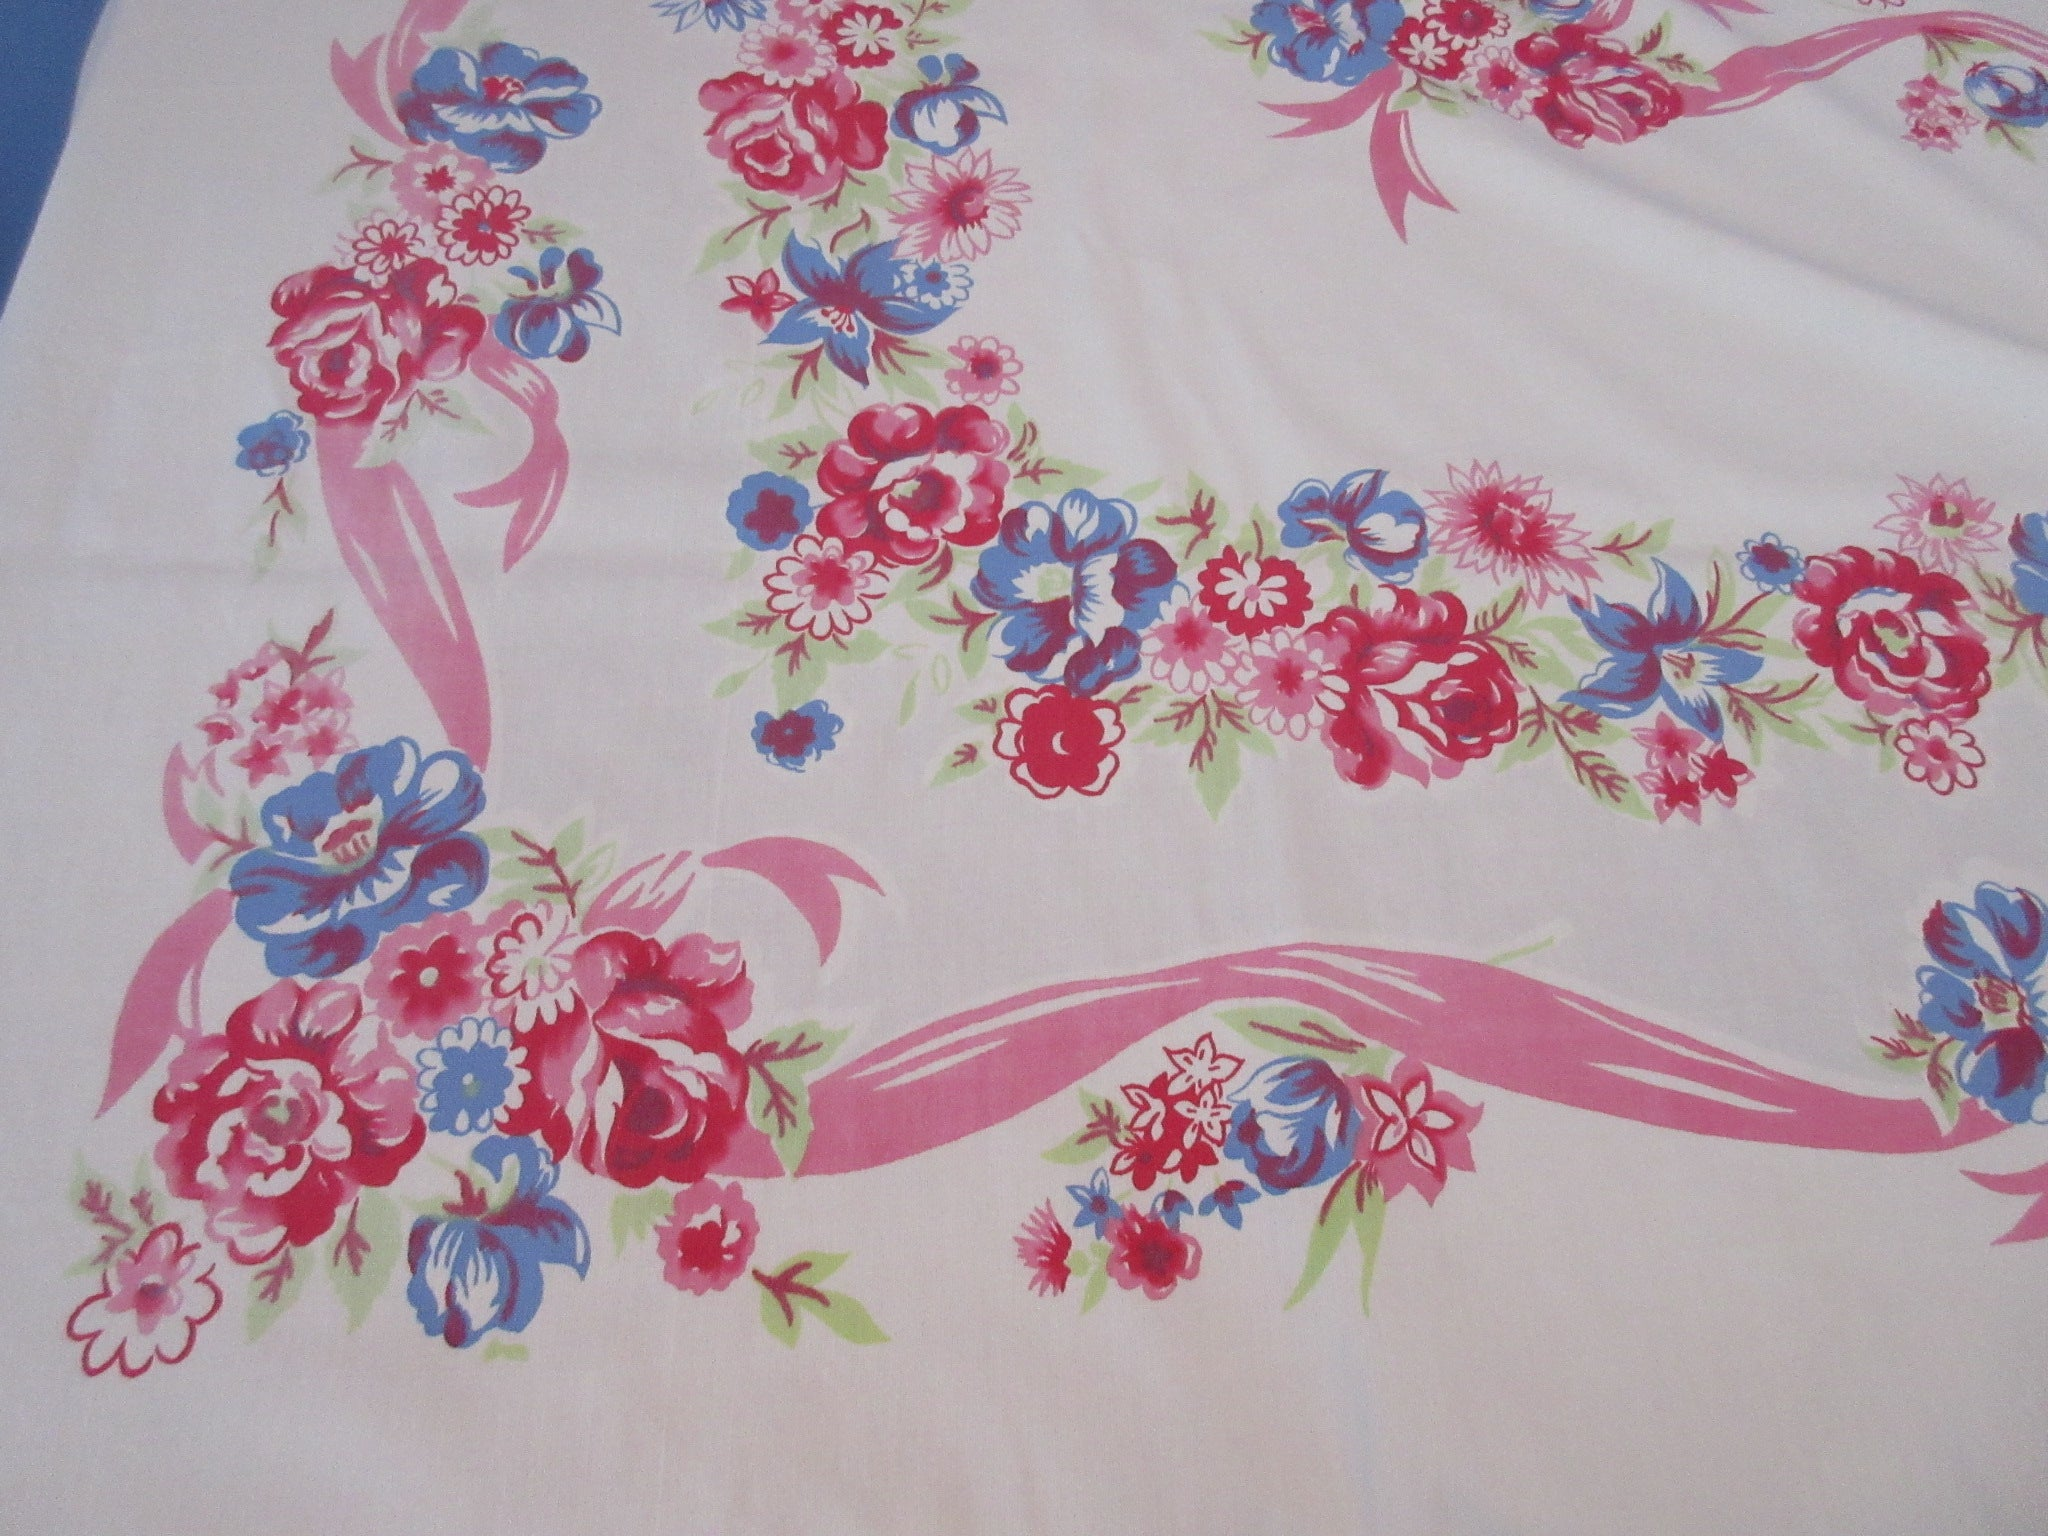 Large Pink Blue Roses Ribbons Floral Vintage Printed Tablecloth (84 X 57)